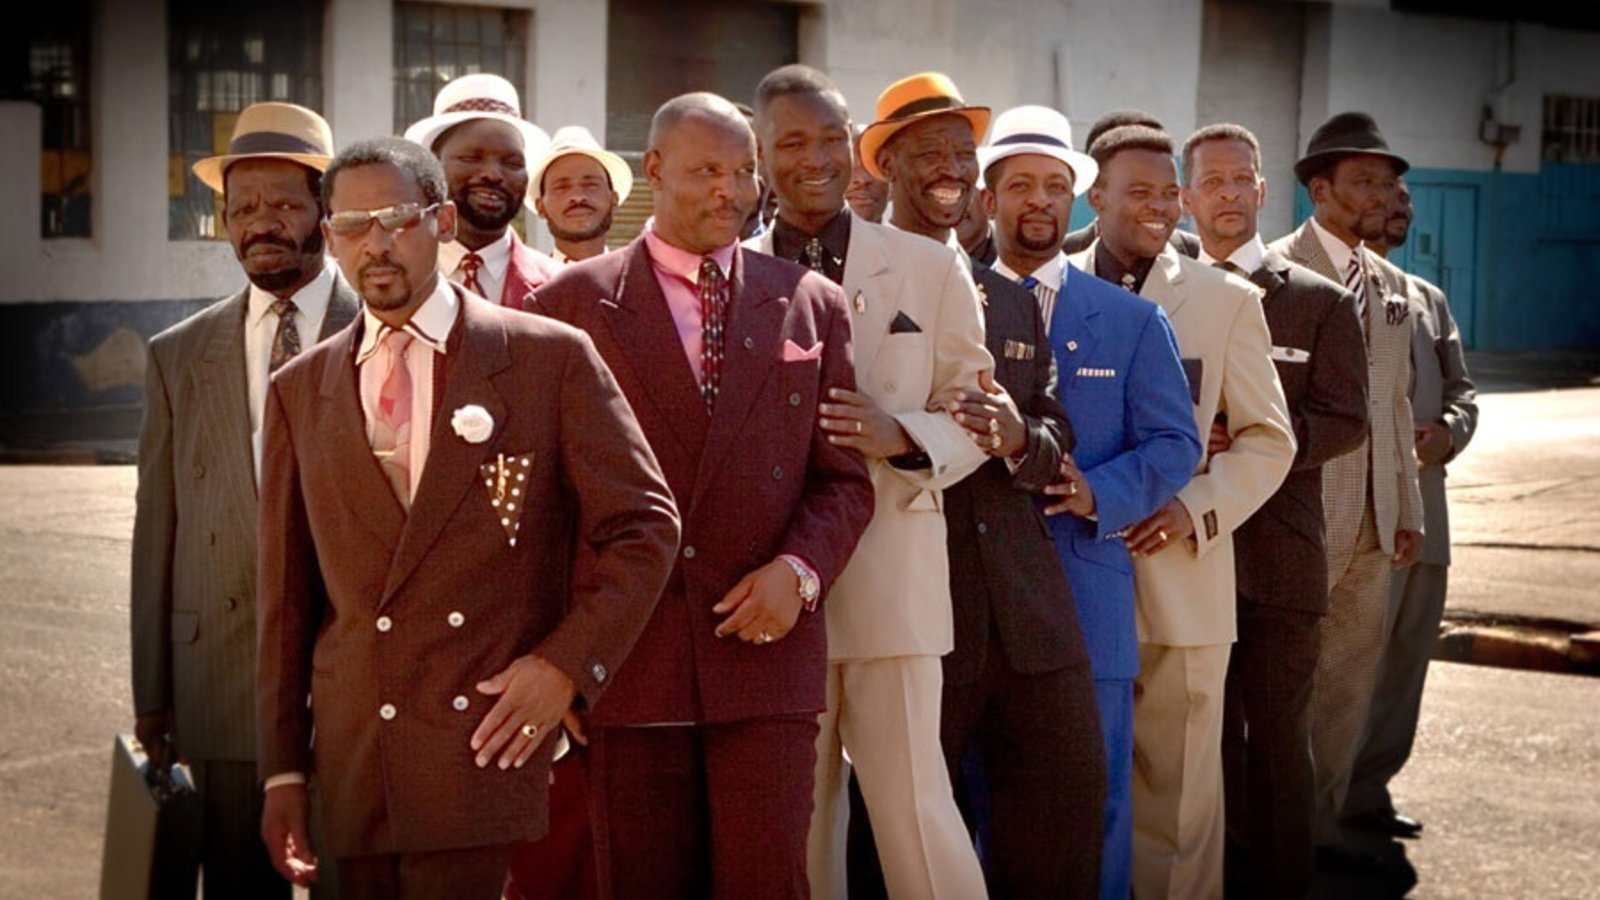 The Swenkas - A Male Fashion Show in South Africa